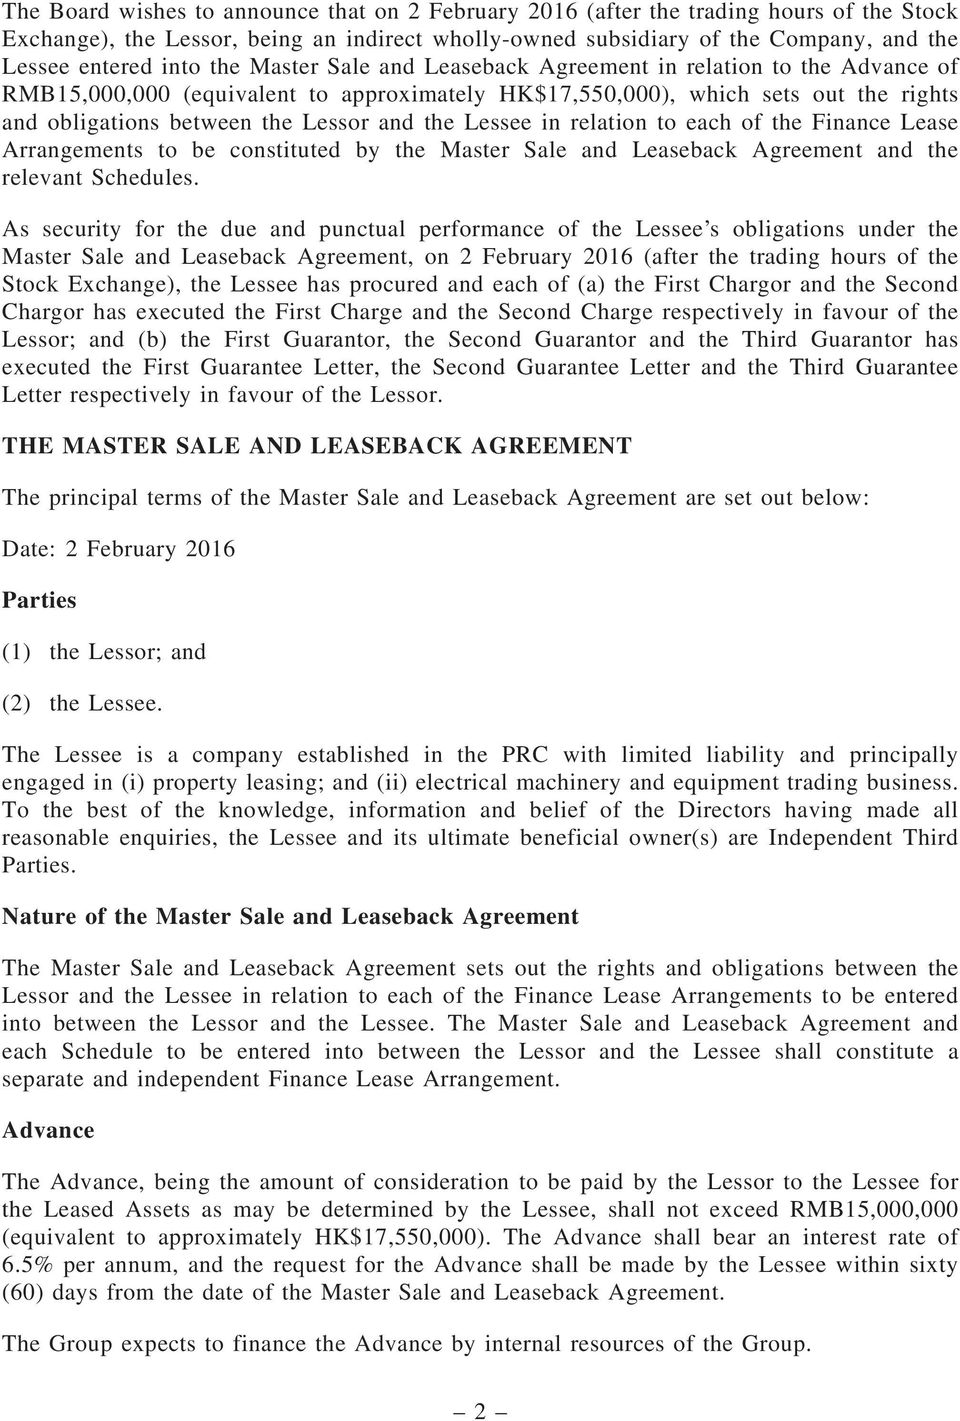 LesseeinrelationtoeachoftheFinanceLease Arrangements to be constituted by the Master Sale and Leaseback Agreement and the relevant Schedules.